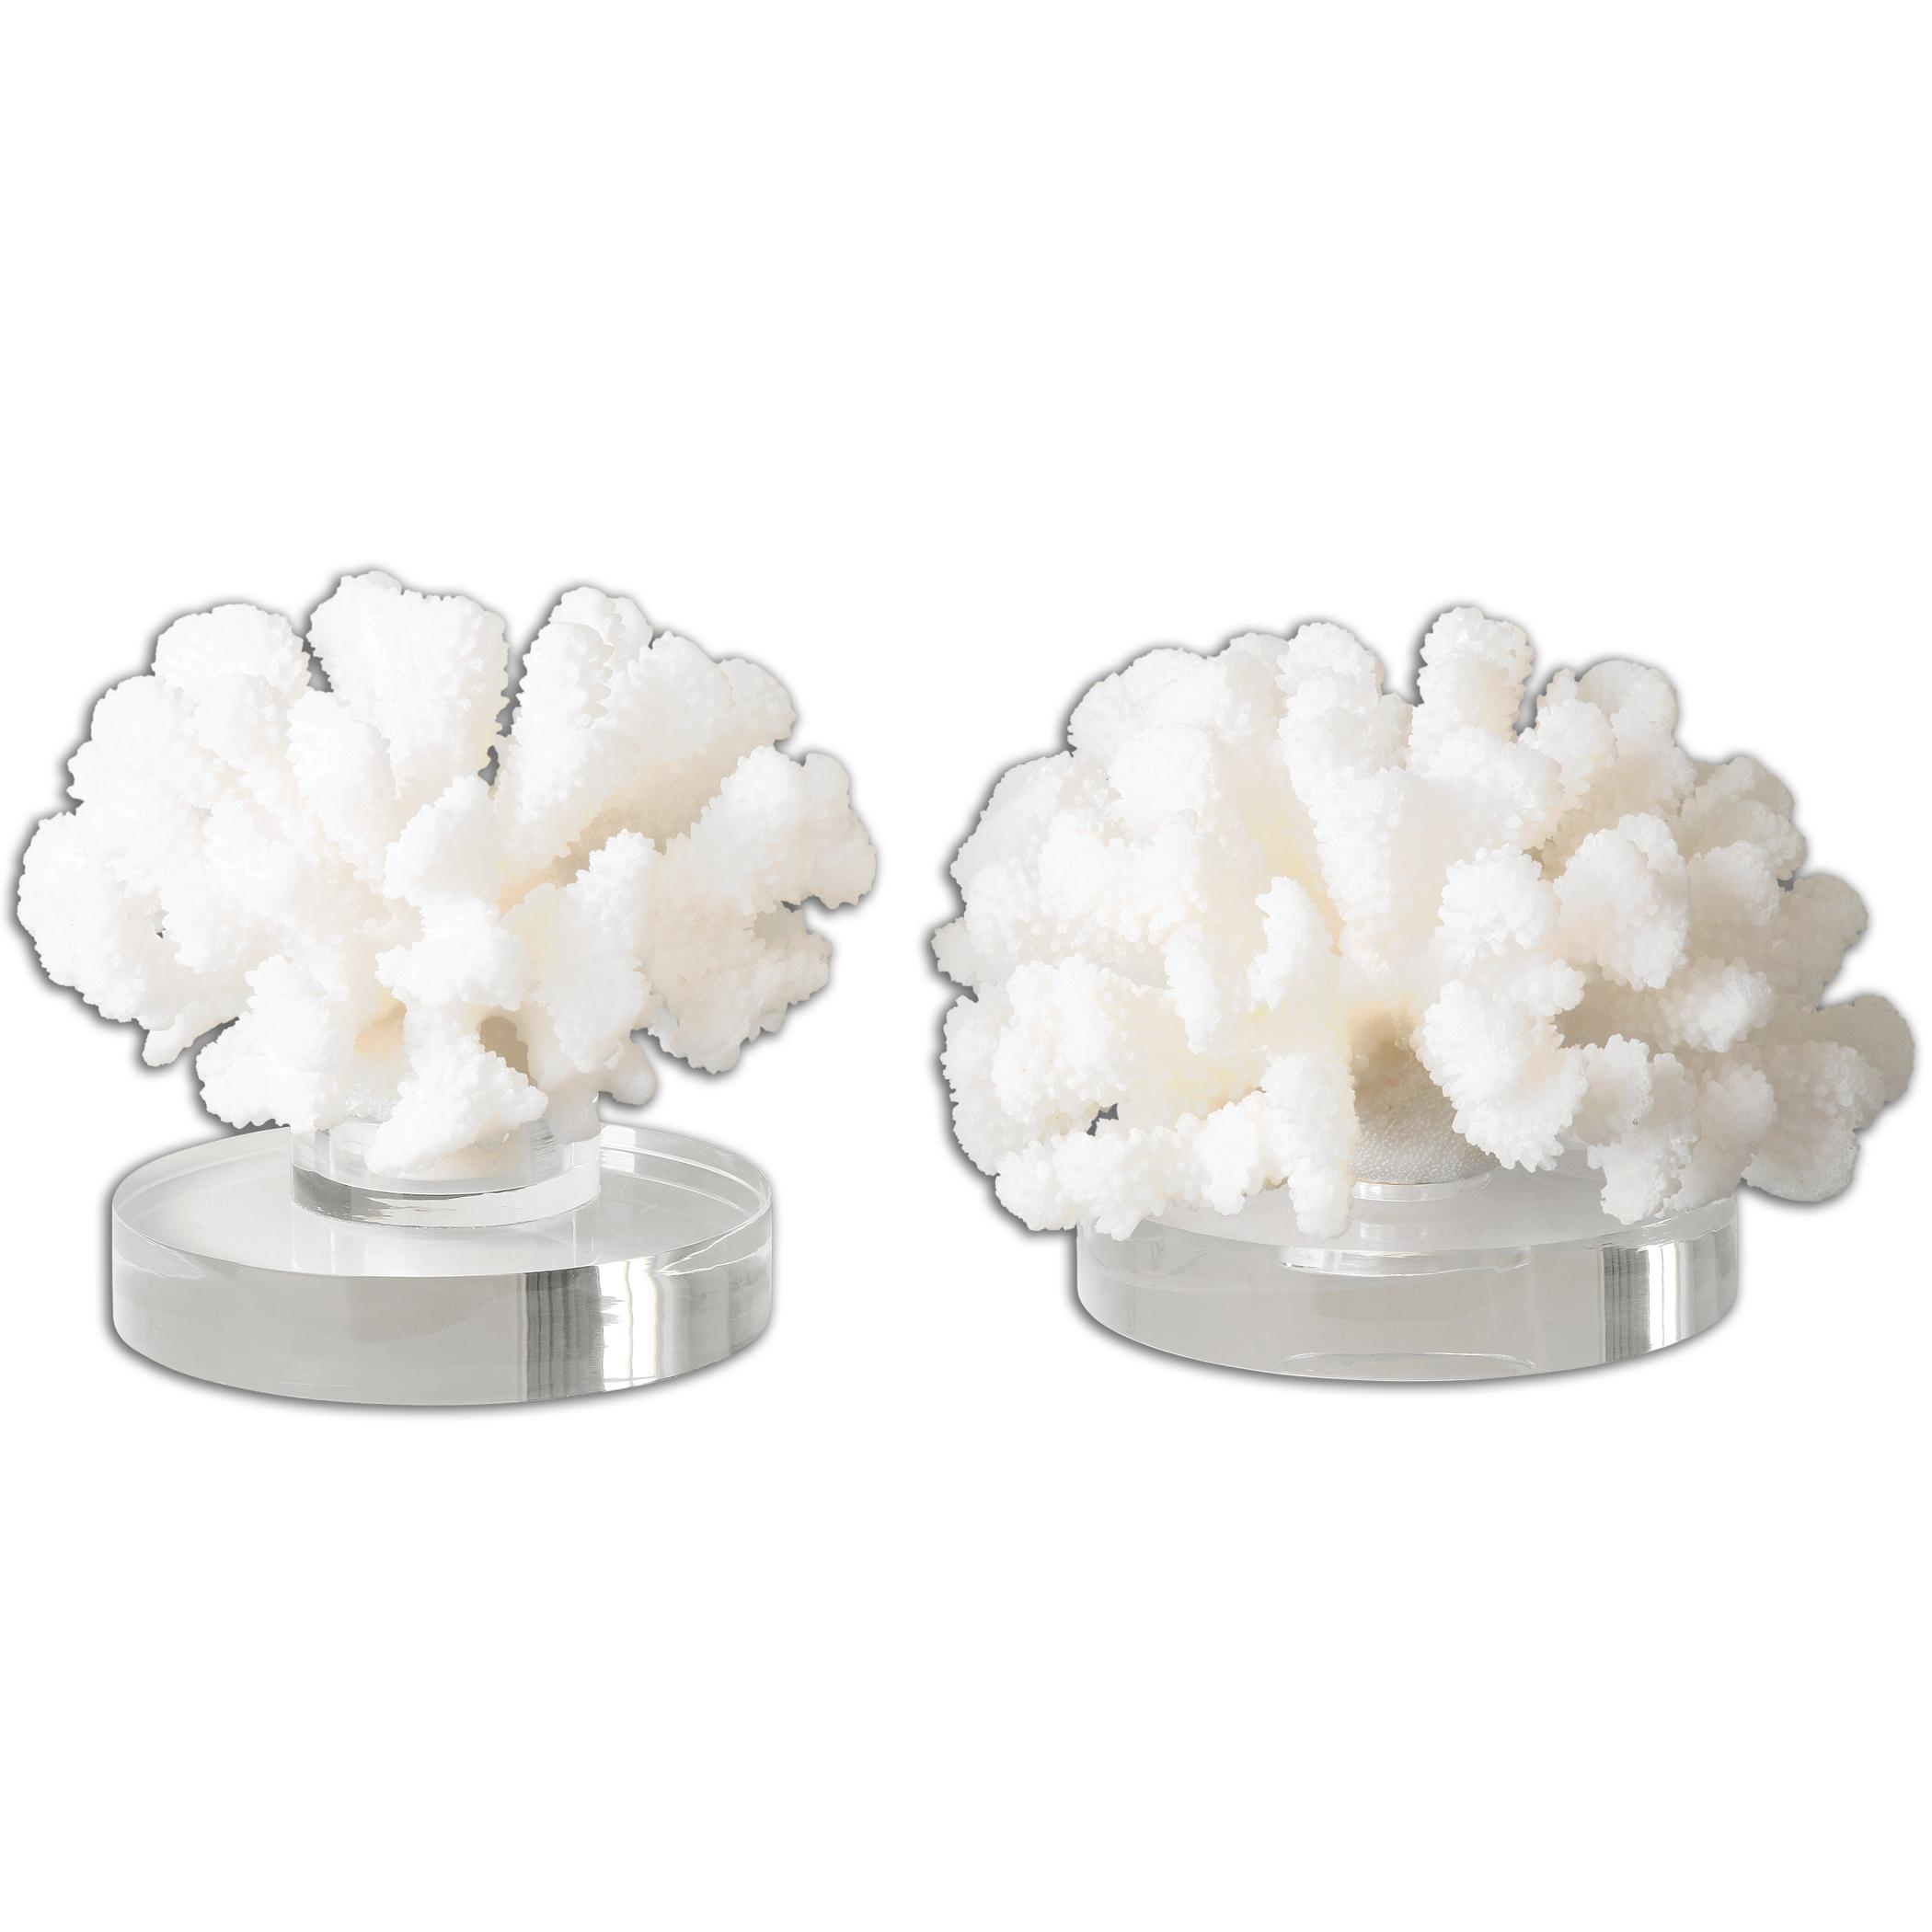 Accessories - Statues and Figurines Hard Coral Sculptures, Set of 2 by Uttermost at Mueller Furniture